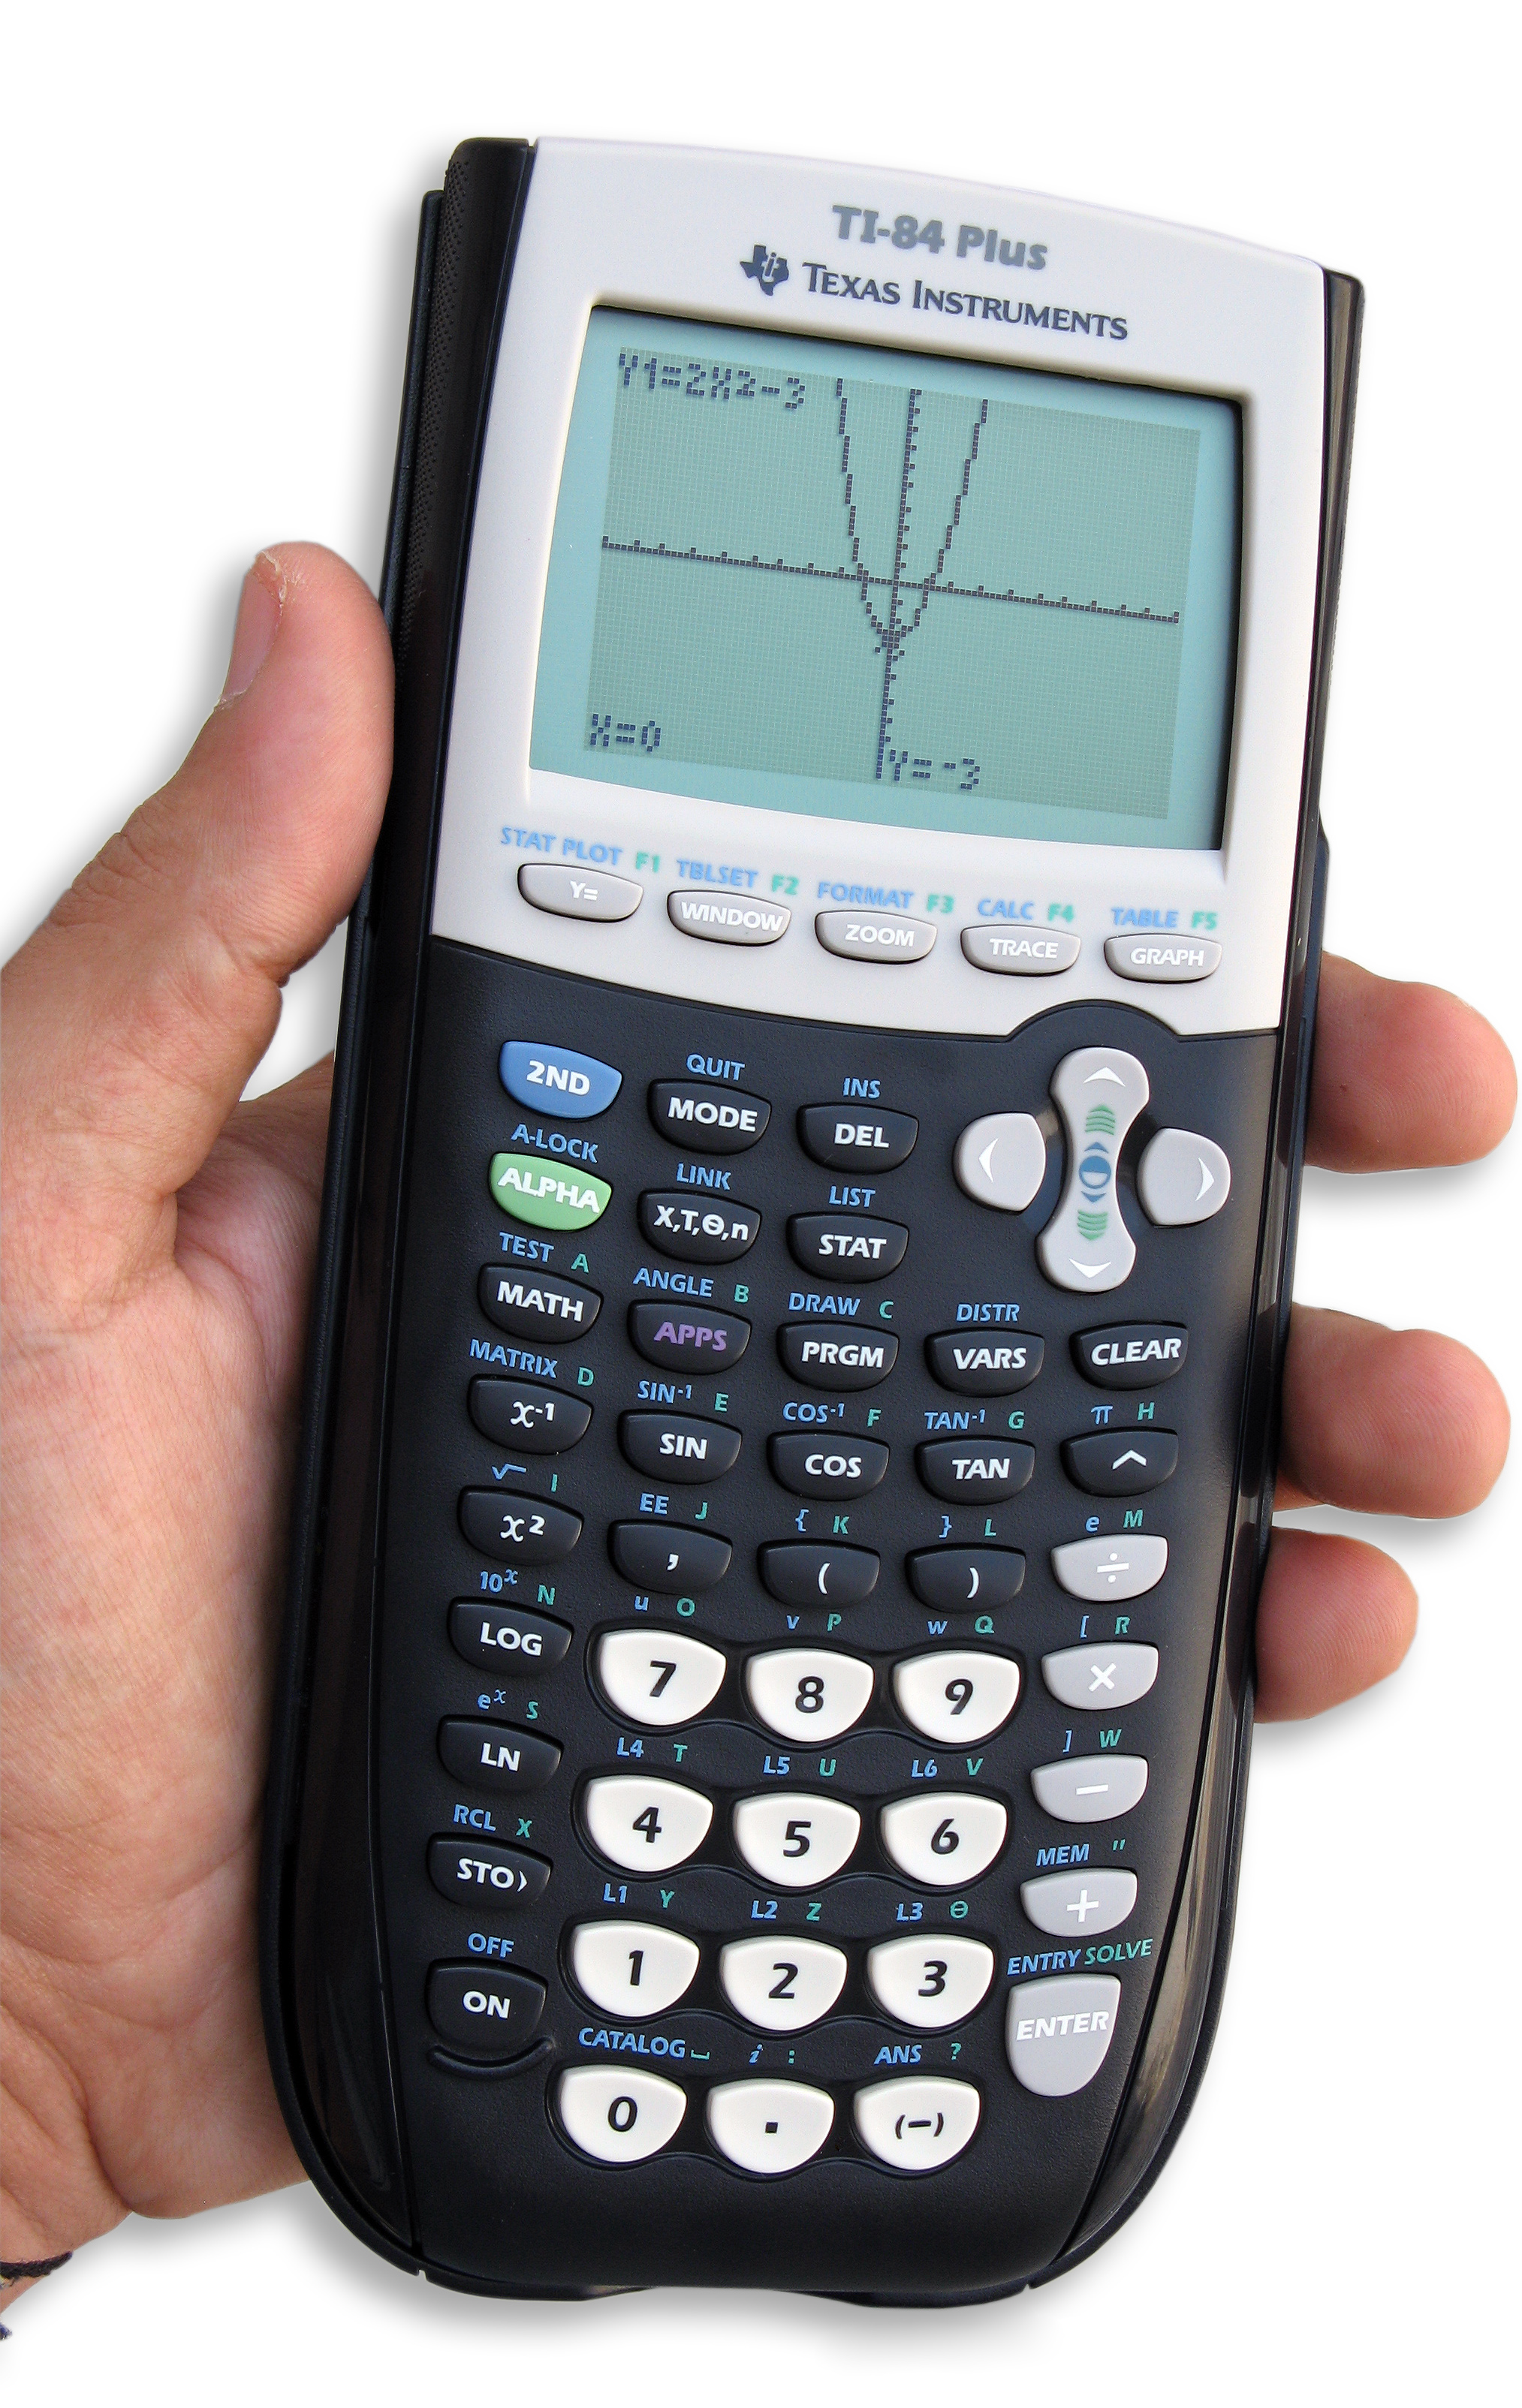 Free Online Texas Instruments Ti-84 Plus Graphing Calculator